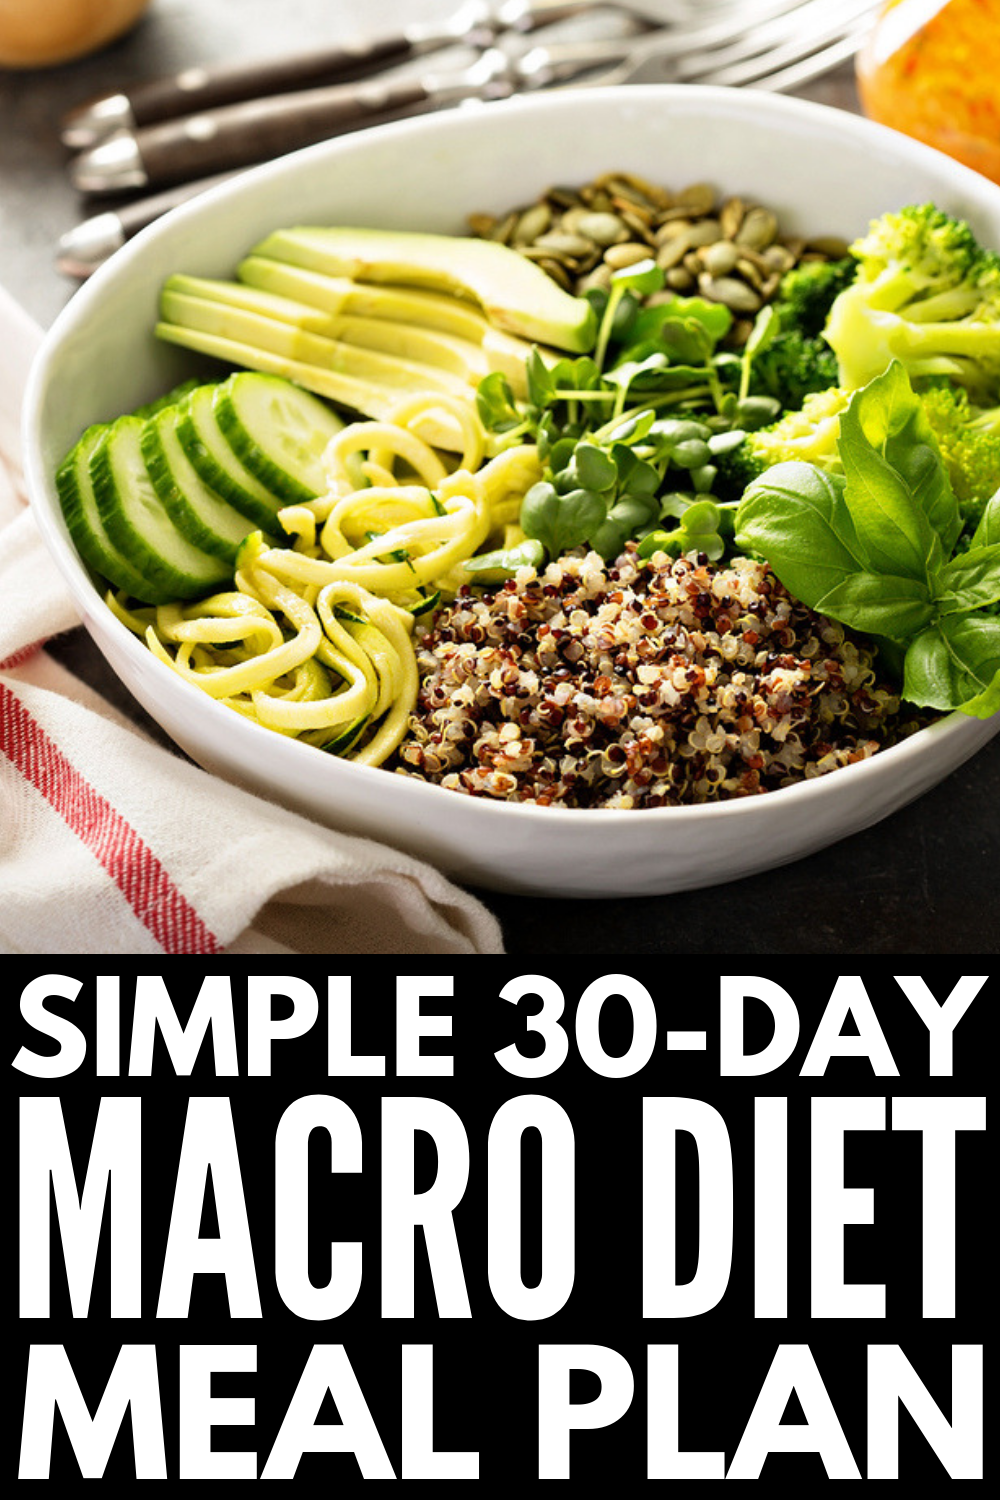 The Macro Diet for Beginners: How to Count Macros for Weight Loss #protiendiet